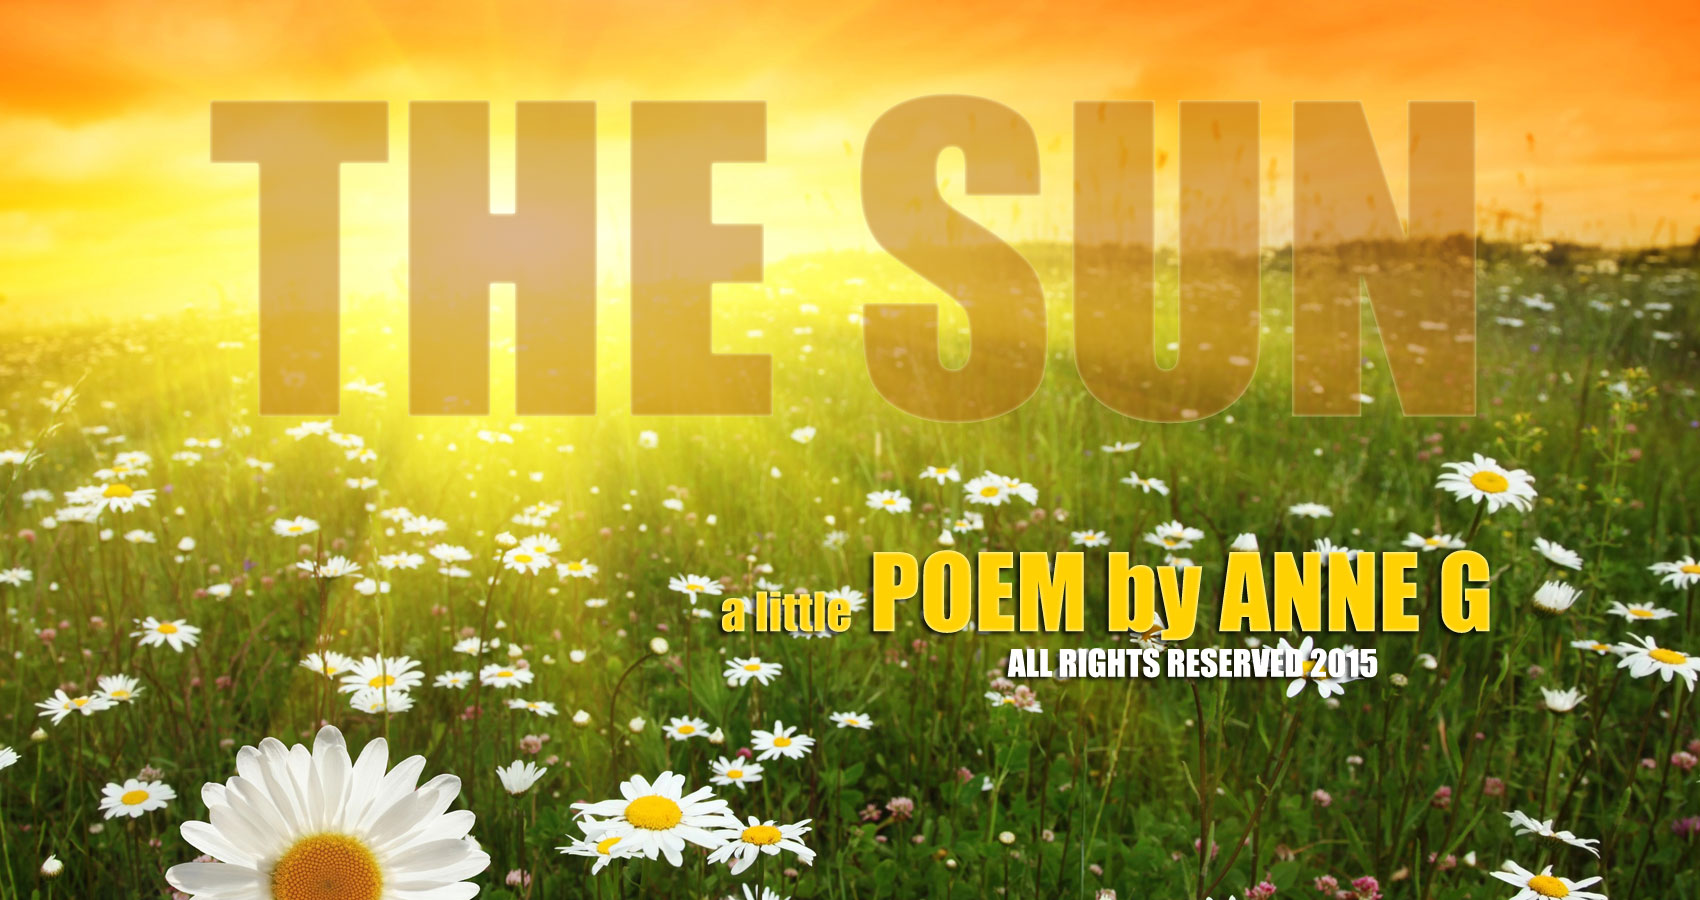 The Sun at spillwords.com by Anne G